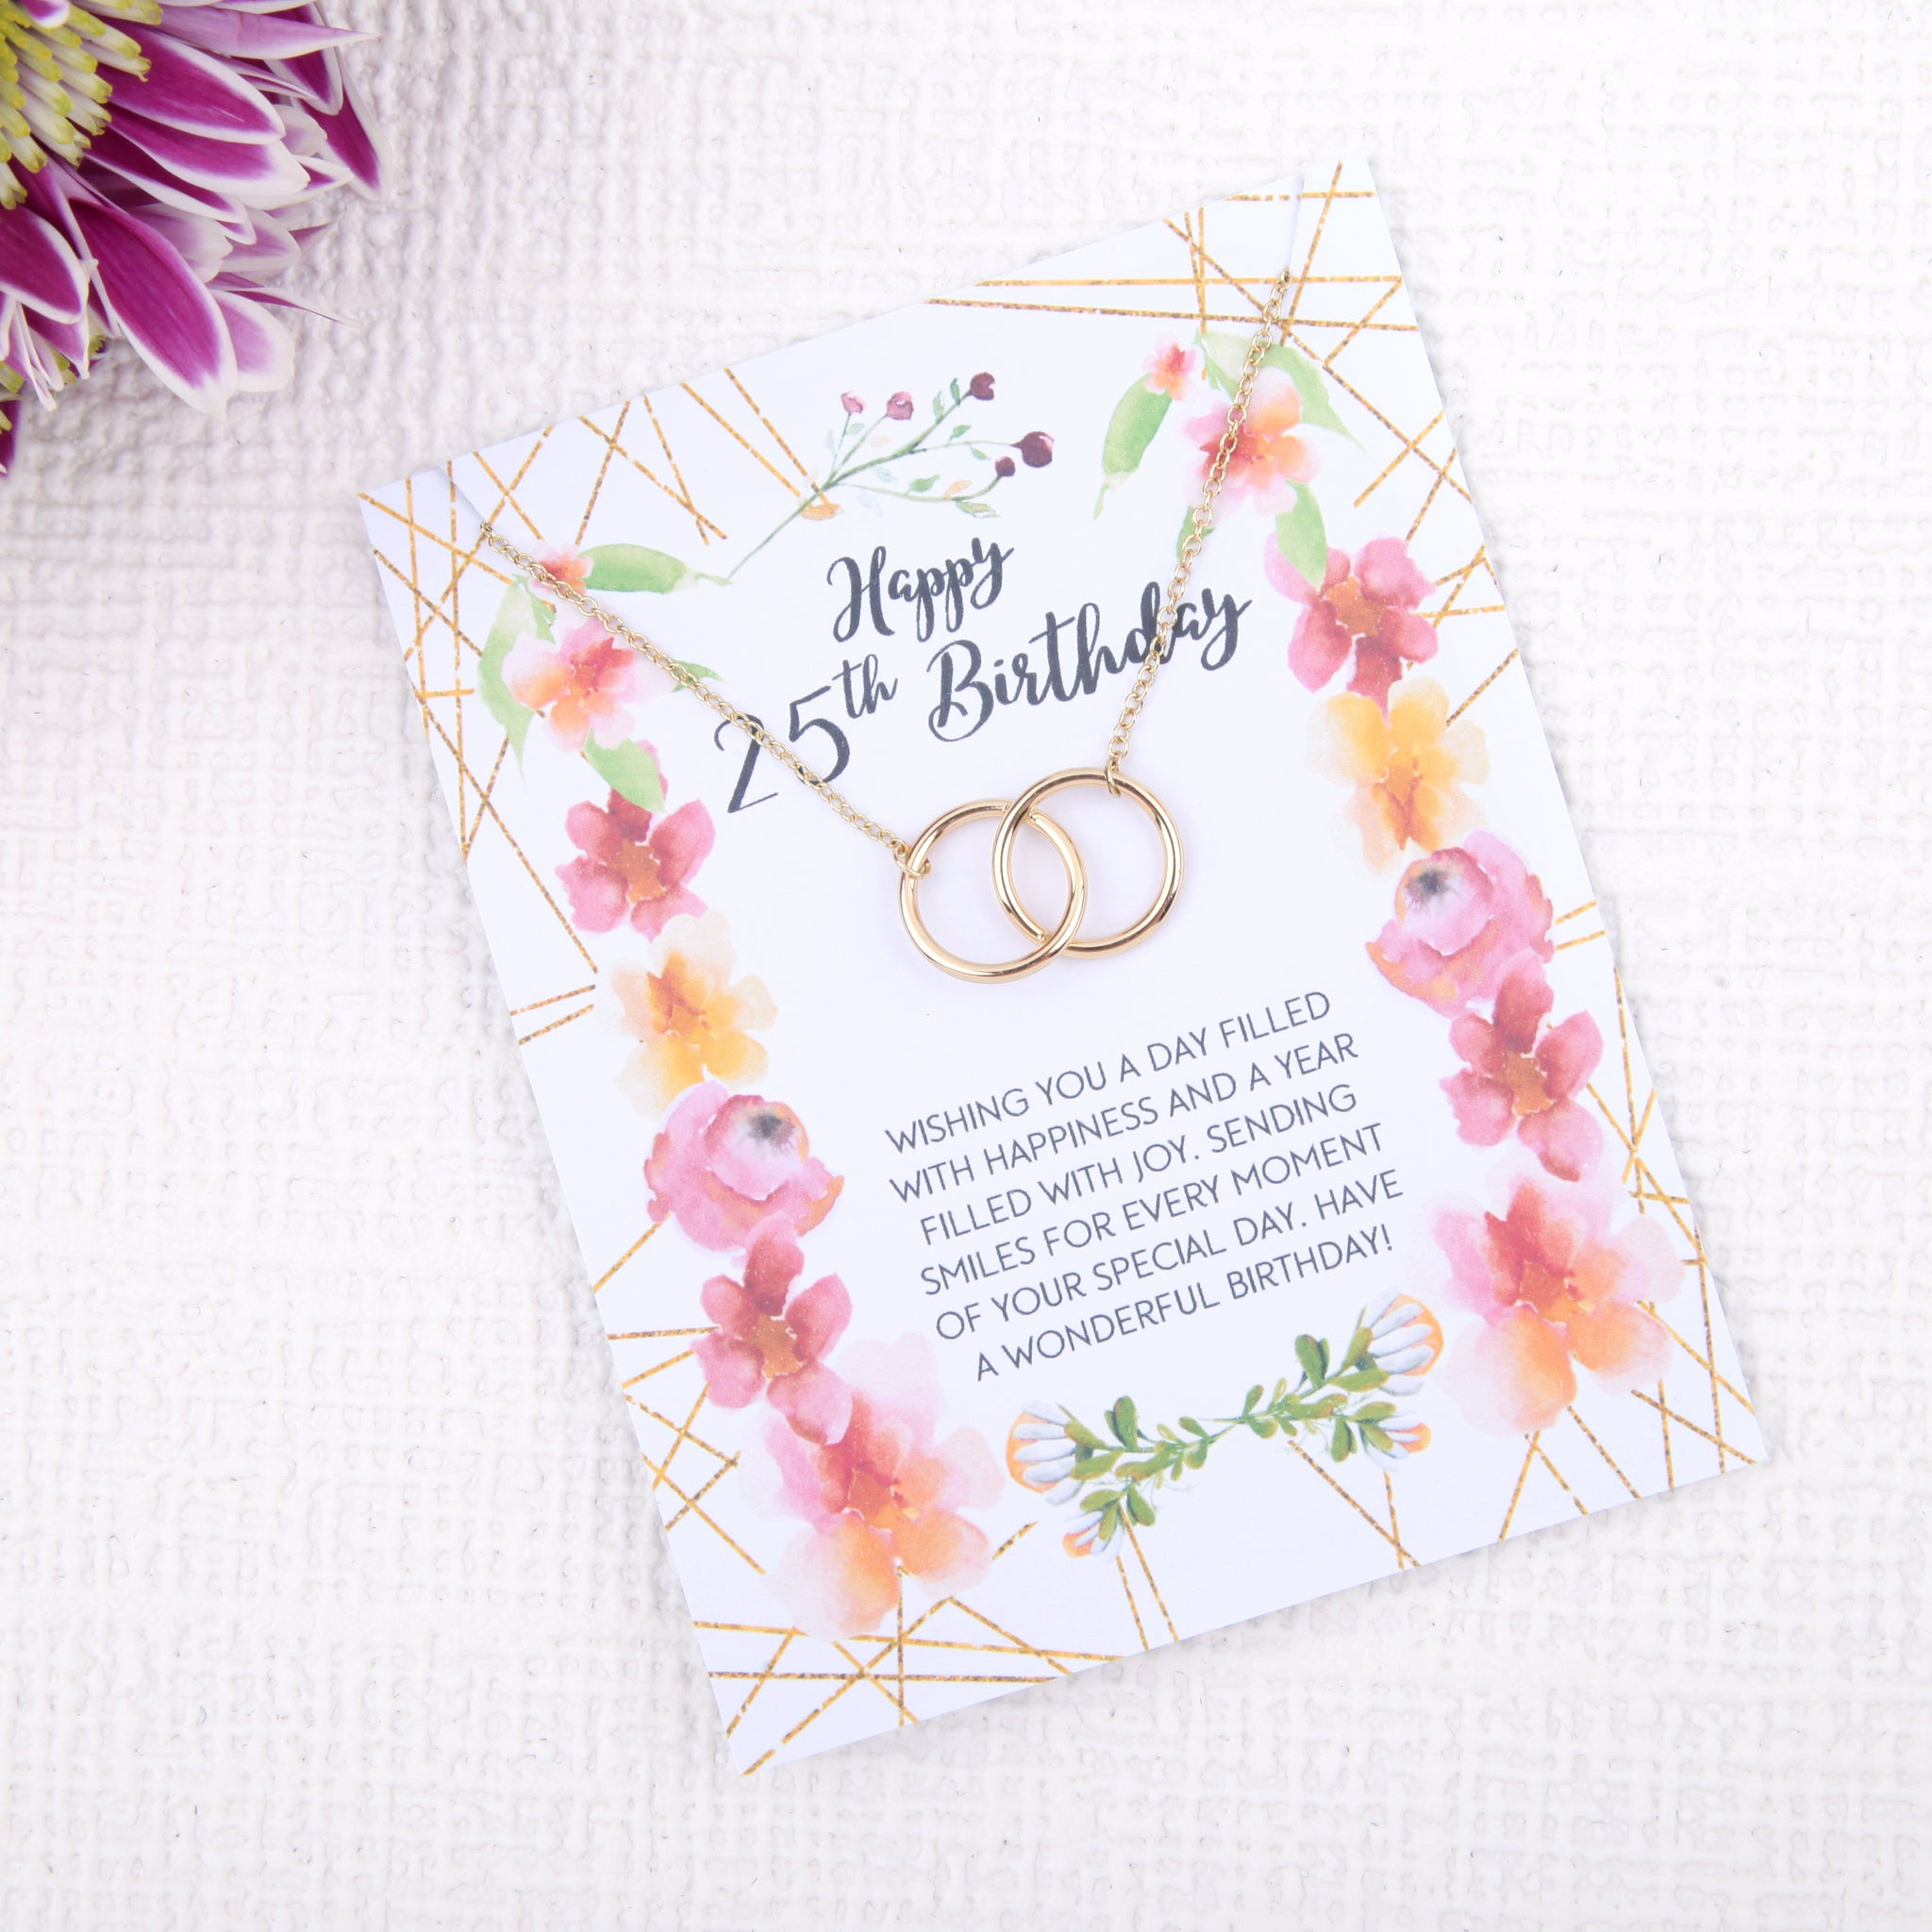 Personalised 25th birthday gift ideas present uk - message card necklace - Statement Made Jewellery